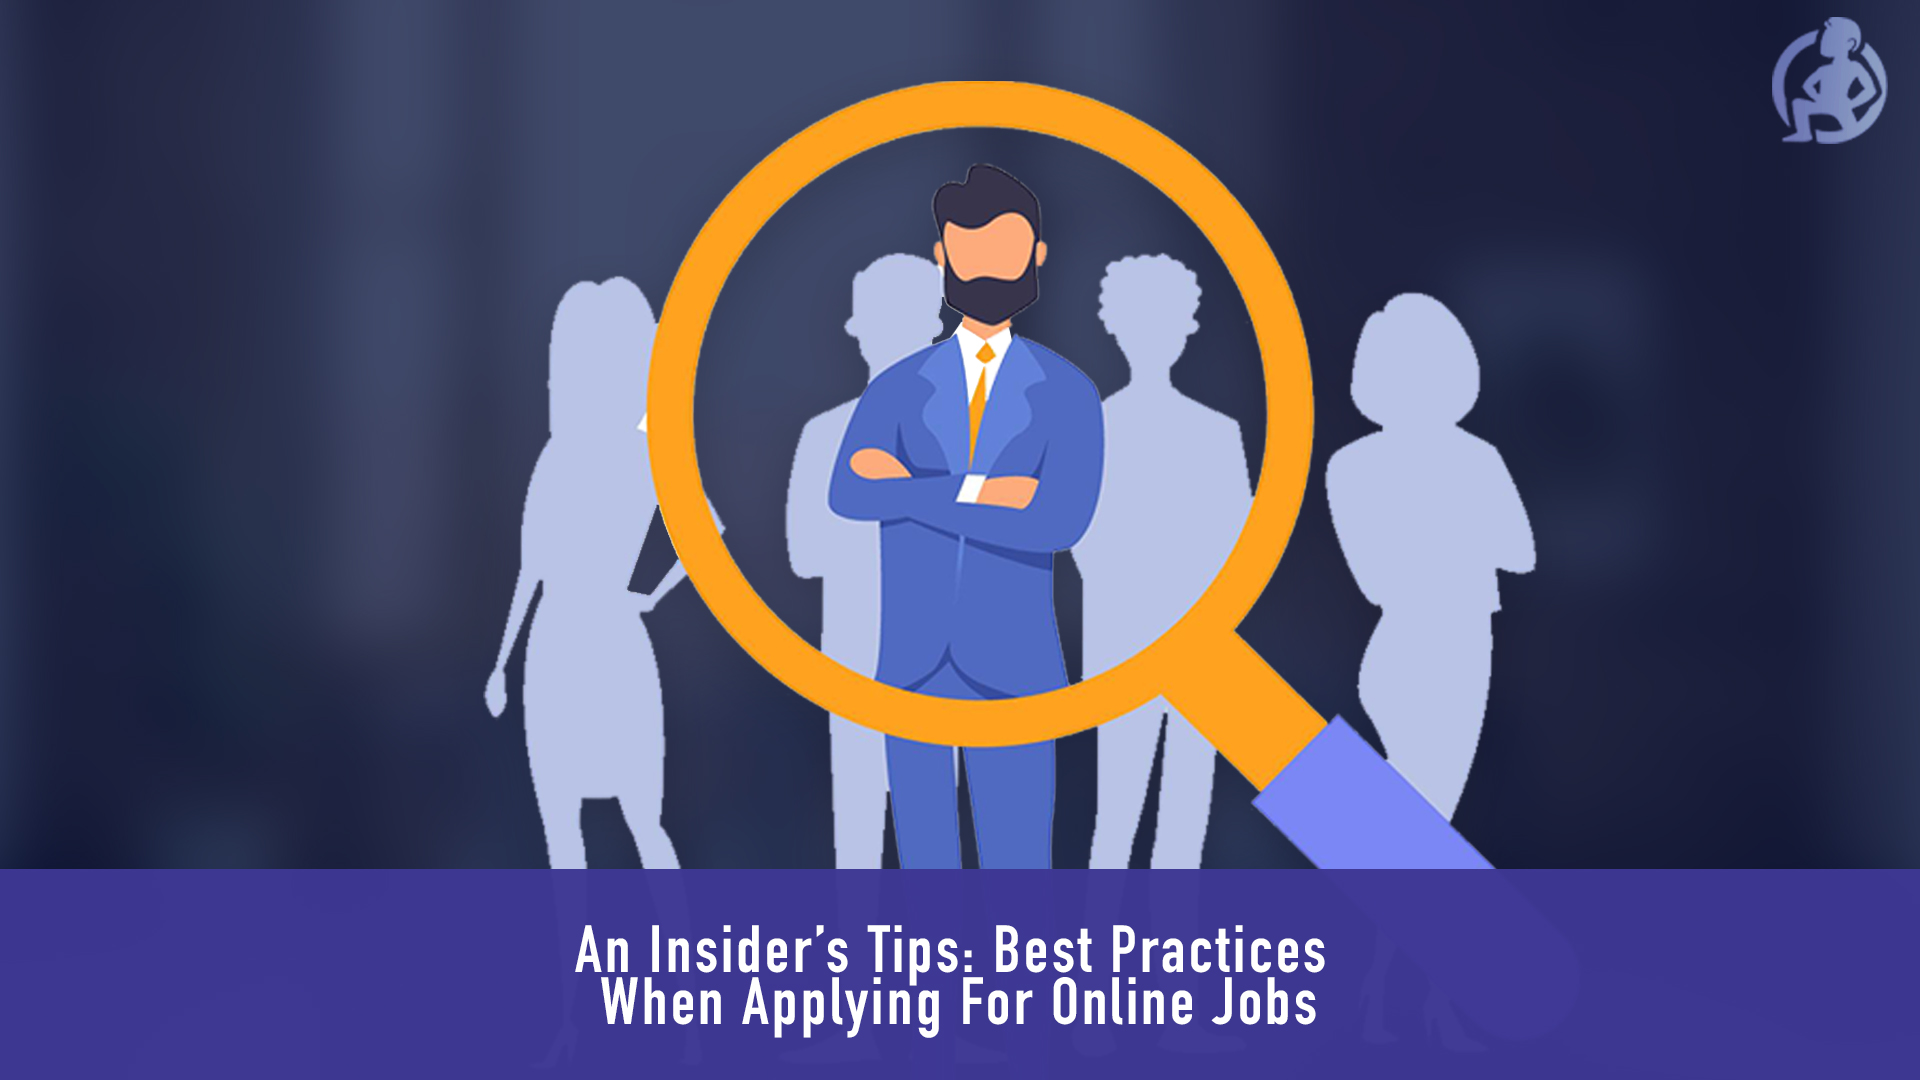 An Insider's Tips- Best Practices When Applying For Online Jobs